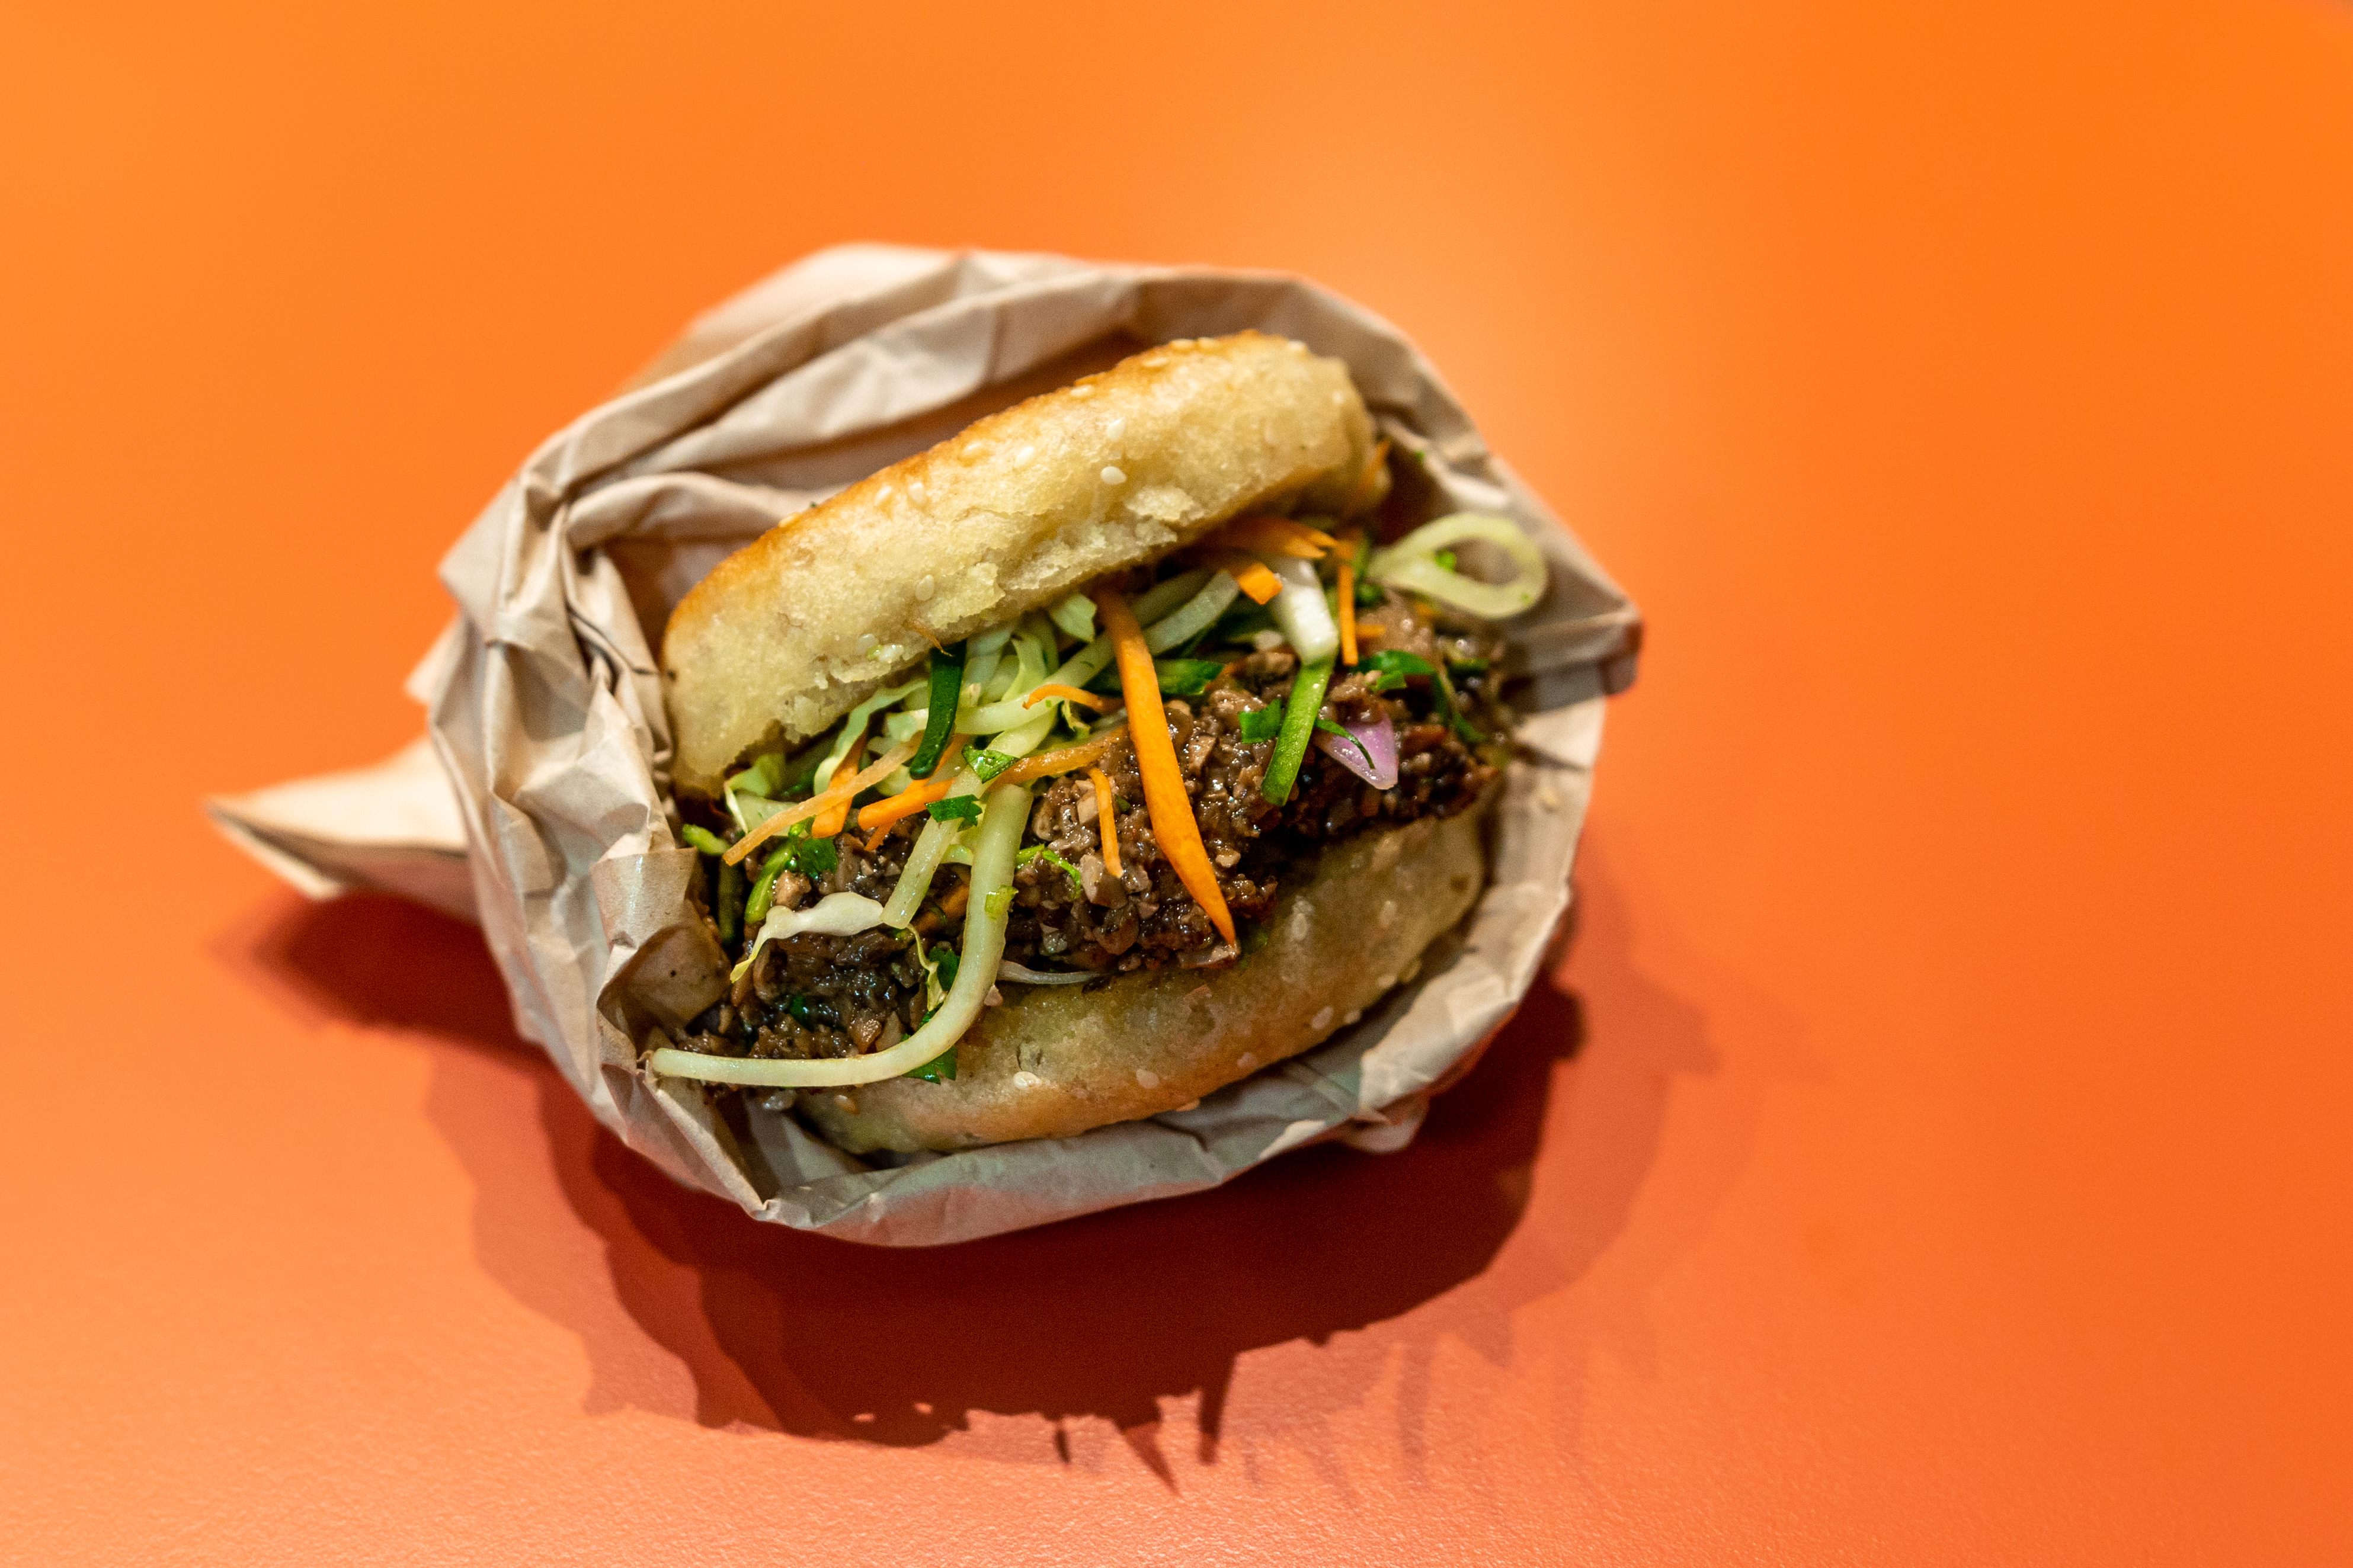 A sesame pancake sandwich in a takeout wrapper houses carrots, a mixture of darkened mushroom, and other accoutrements on an orange countertop